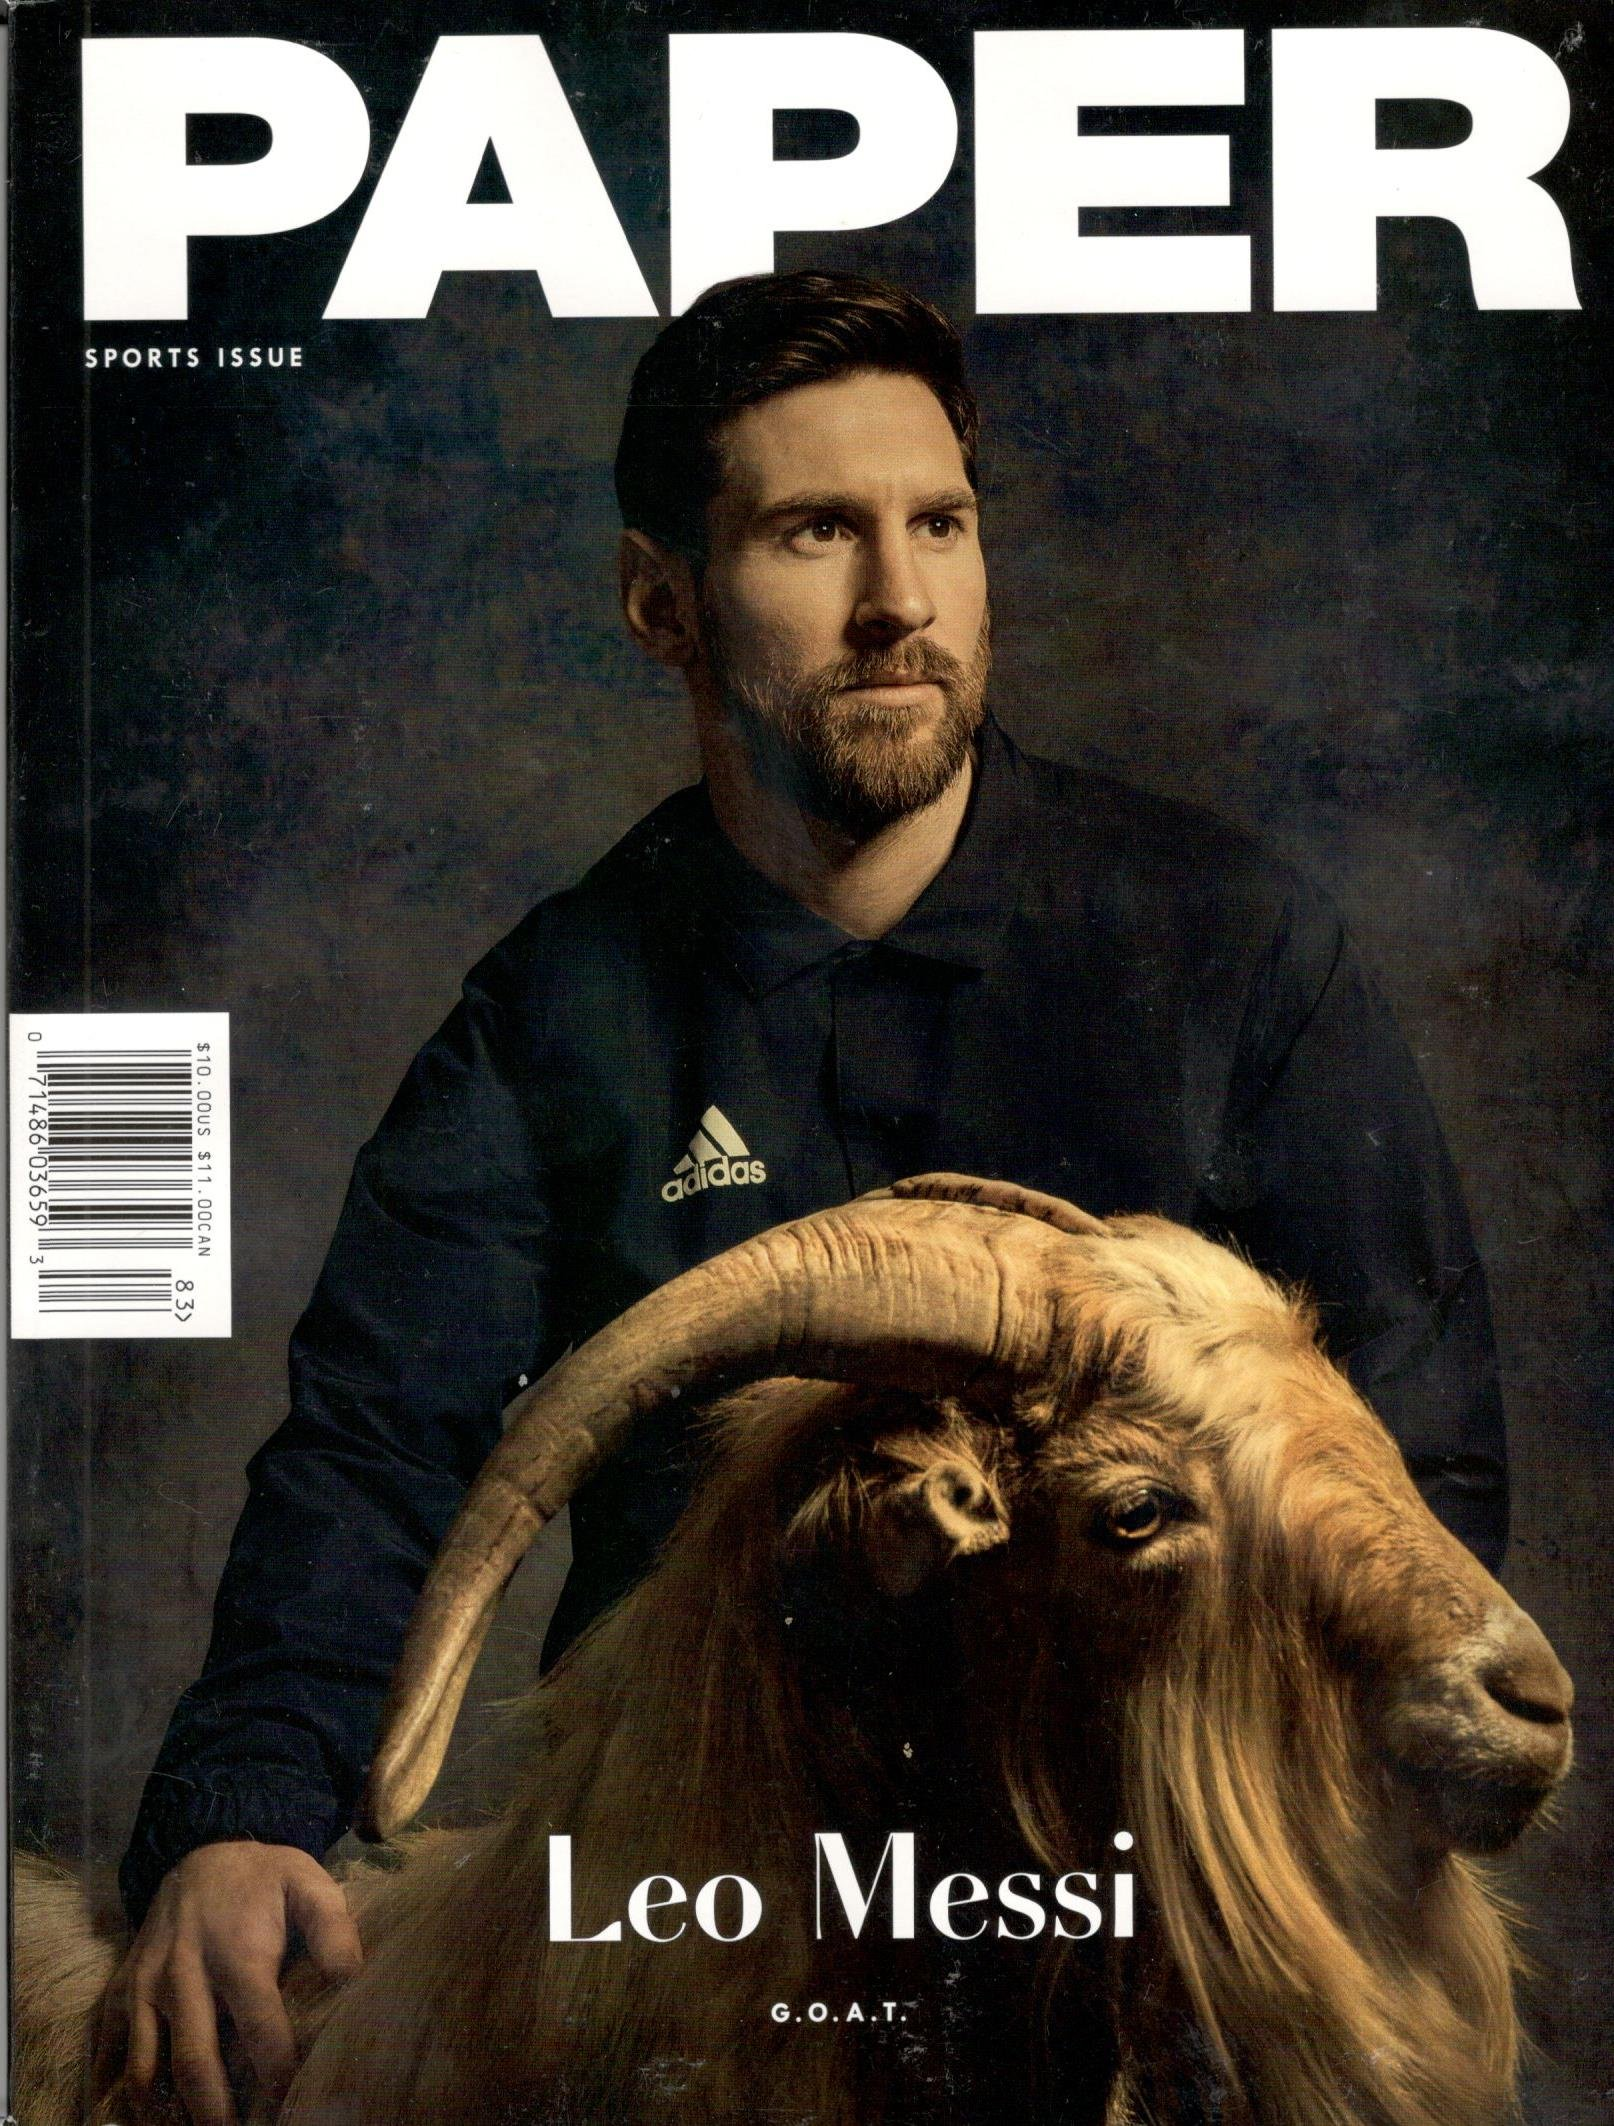 Download Paper Magazine (Summer, 2018) The Sports Issue Leo Messi Cover PDF